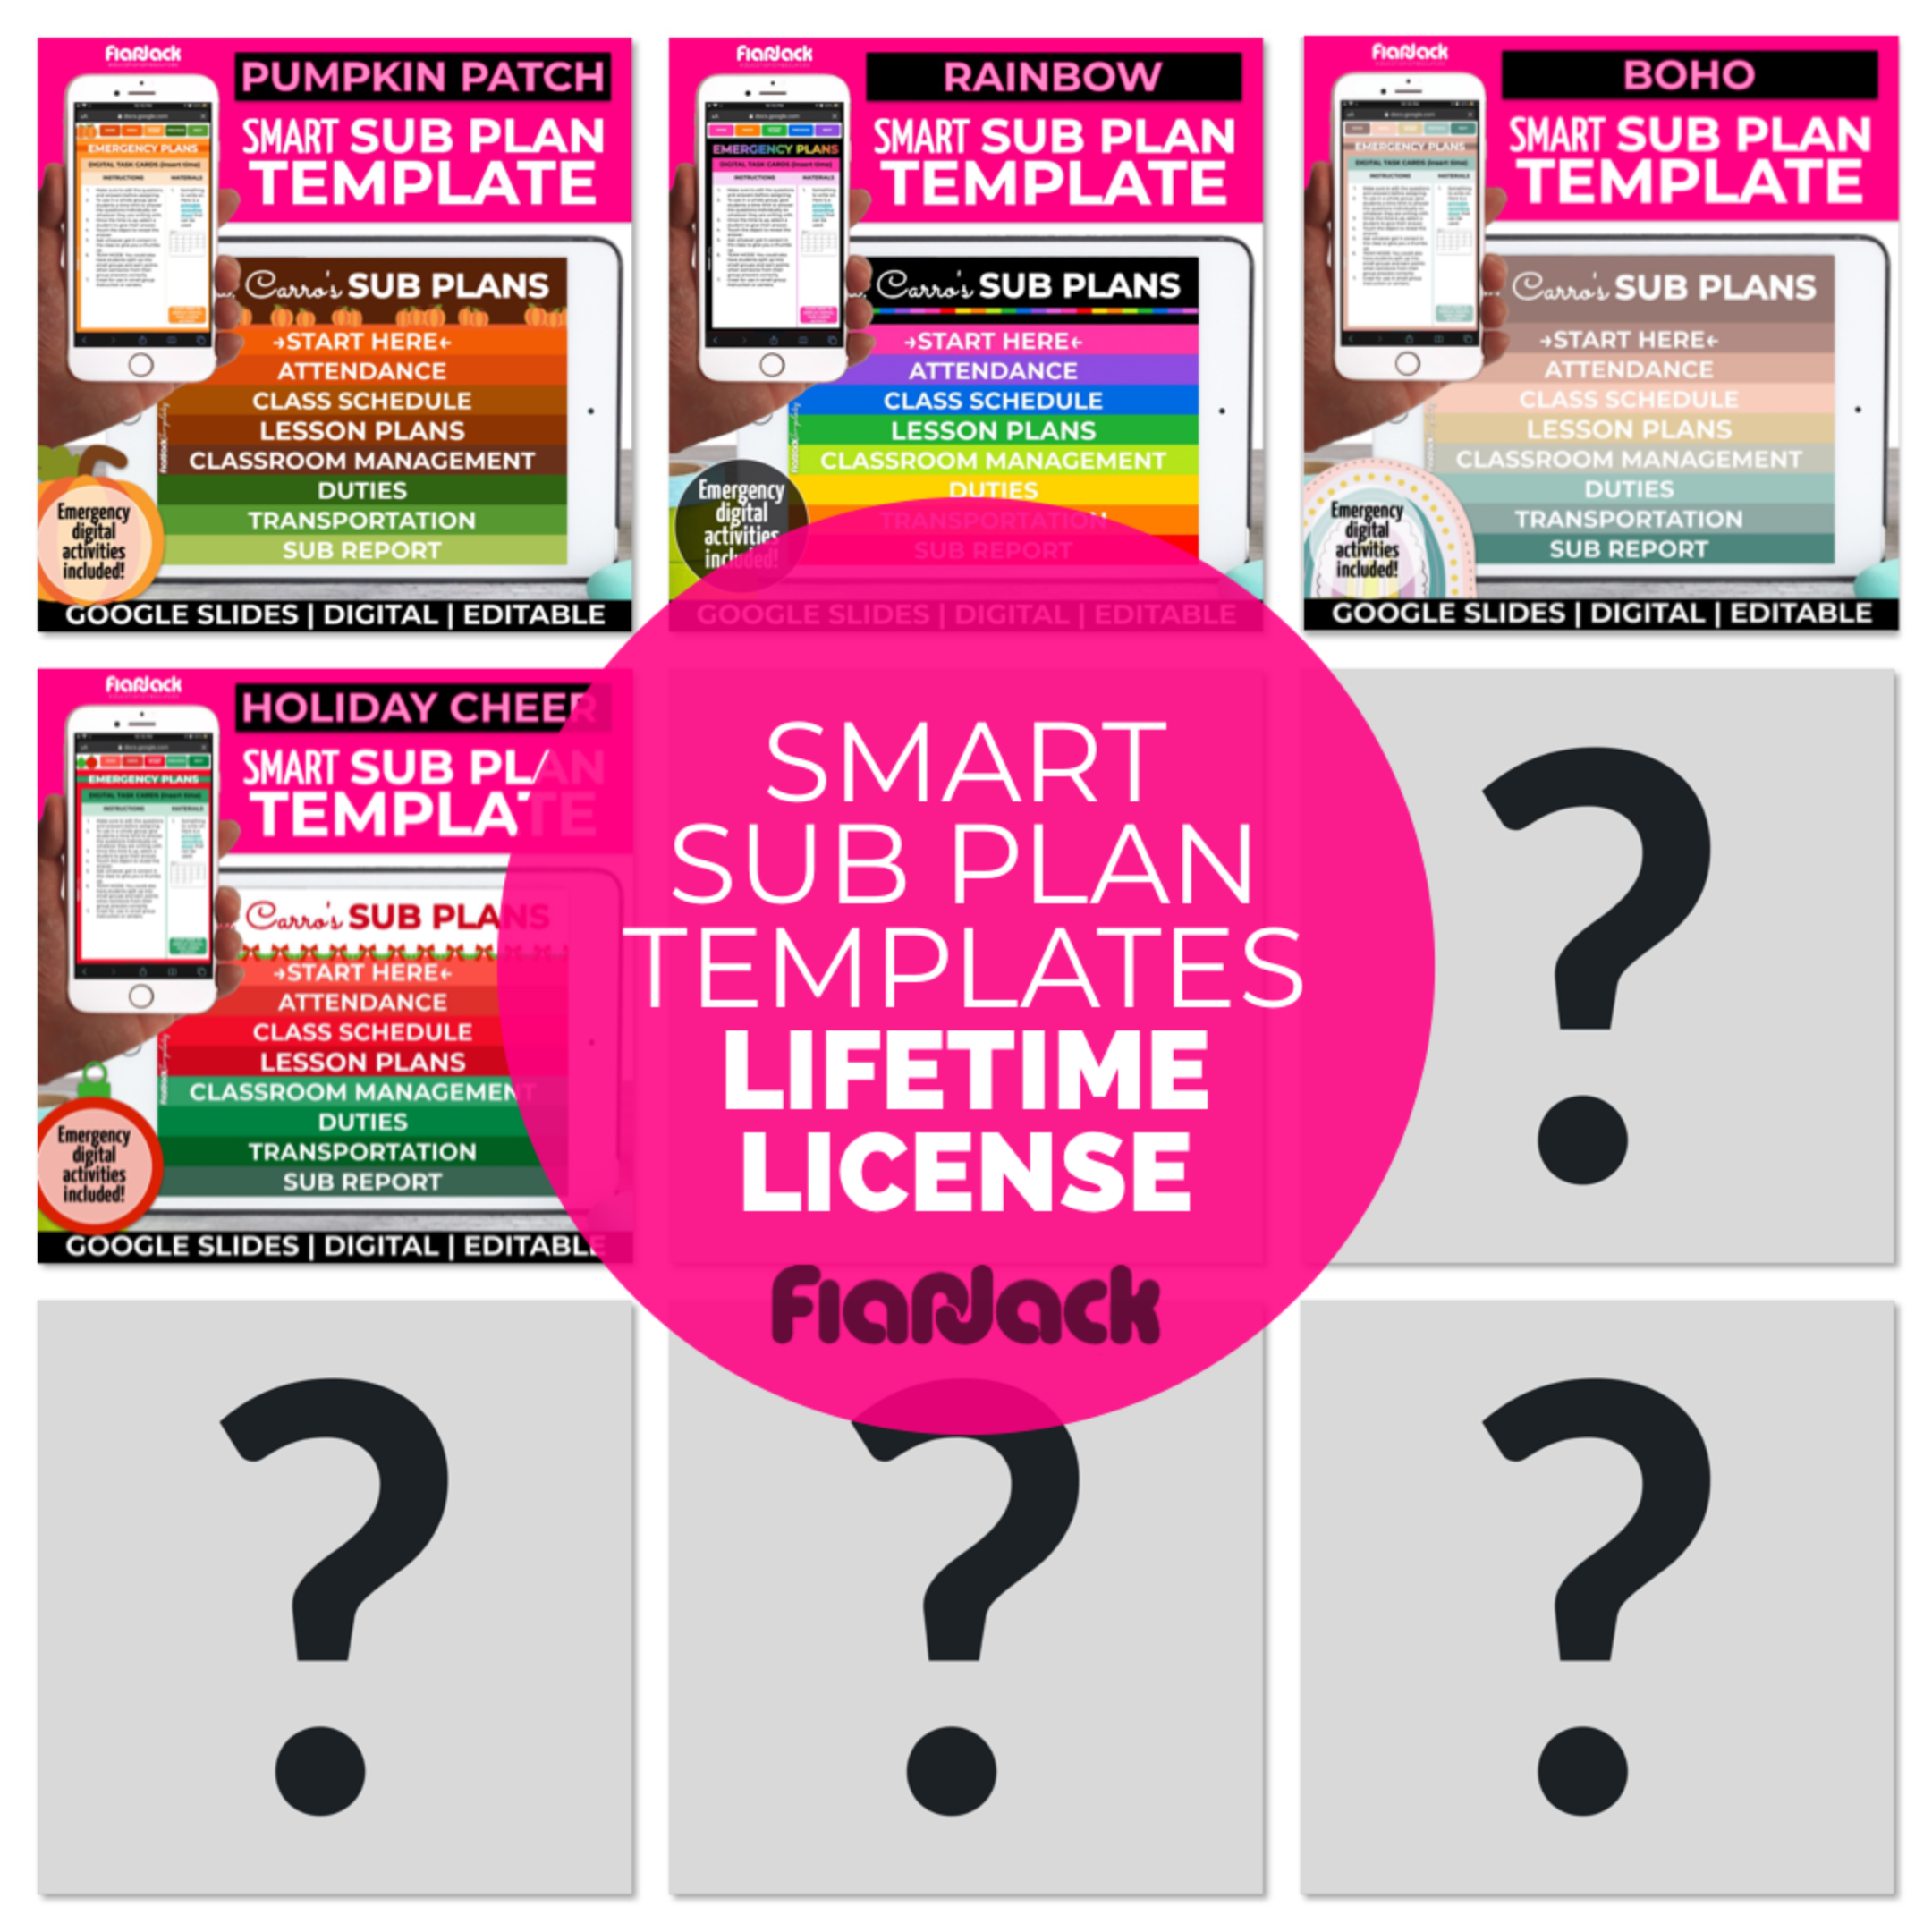 Digital Editable Smart Sub Plan Google Slides Templates | LIFETIME LICENSE